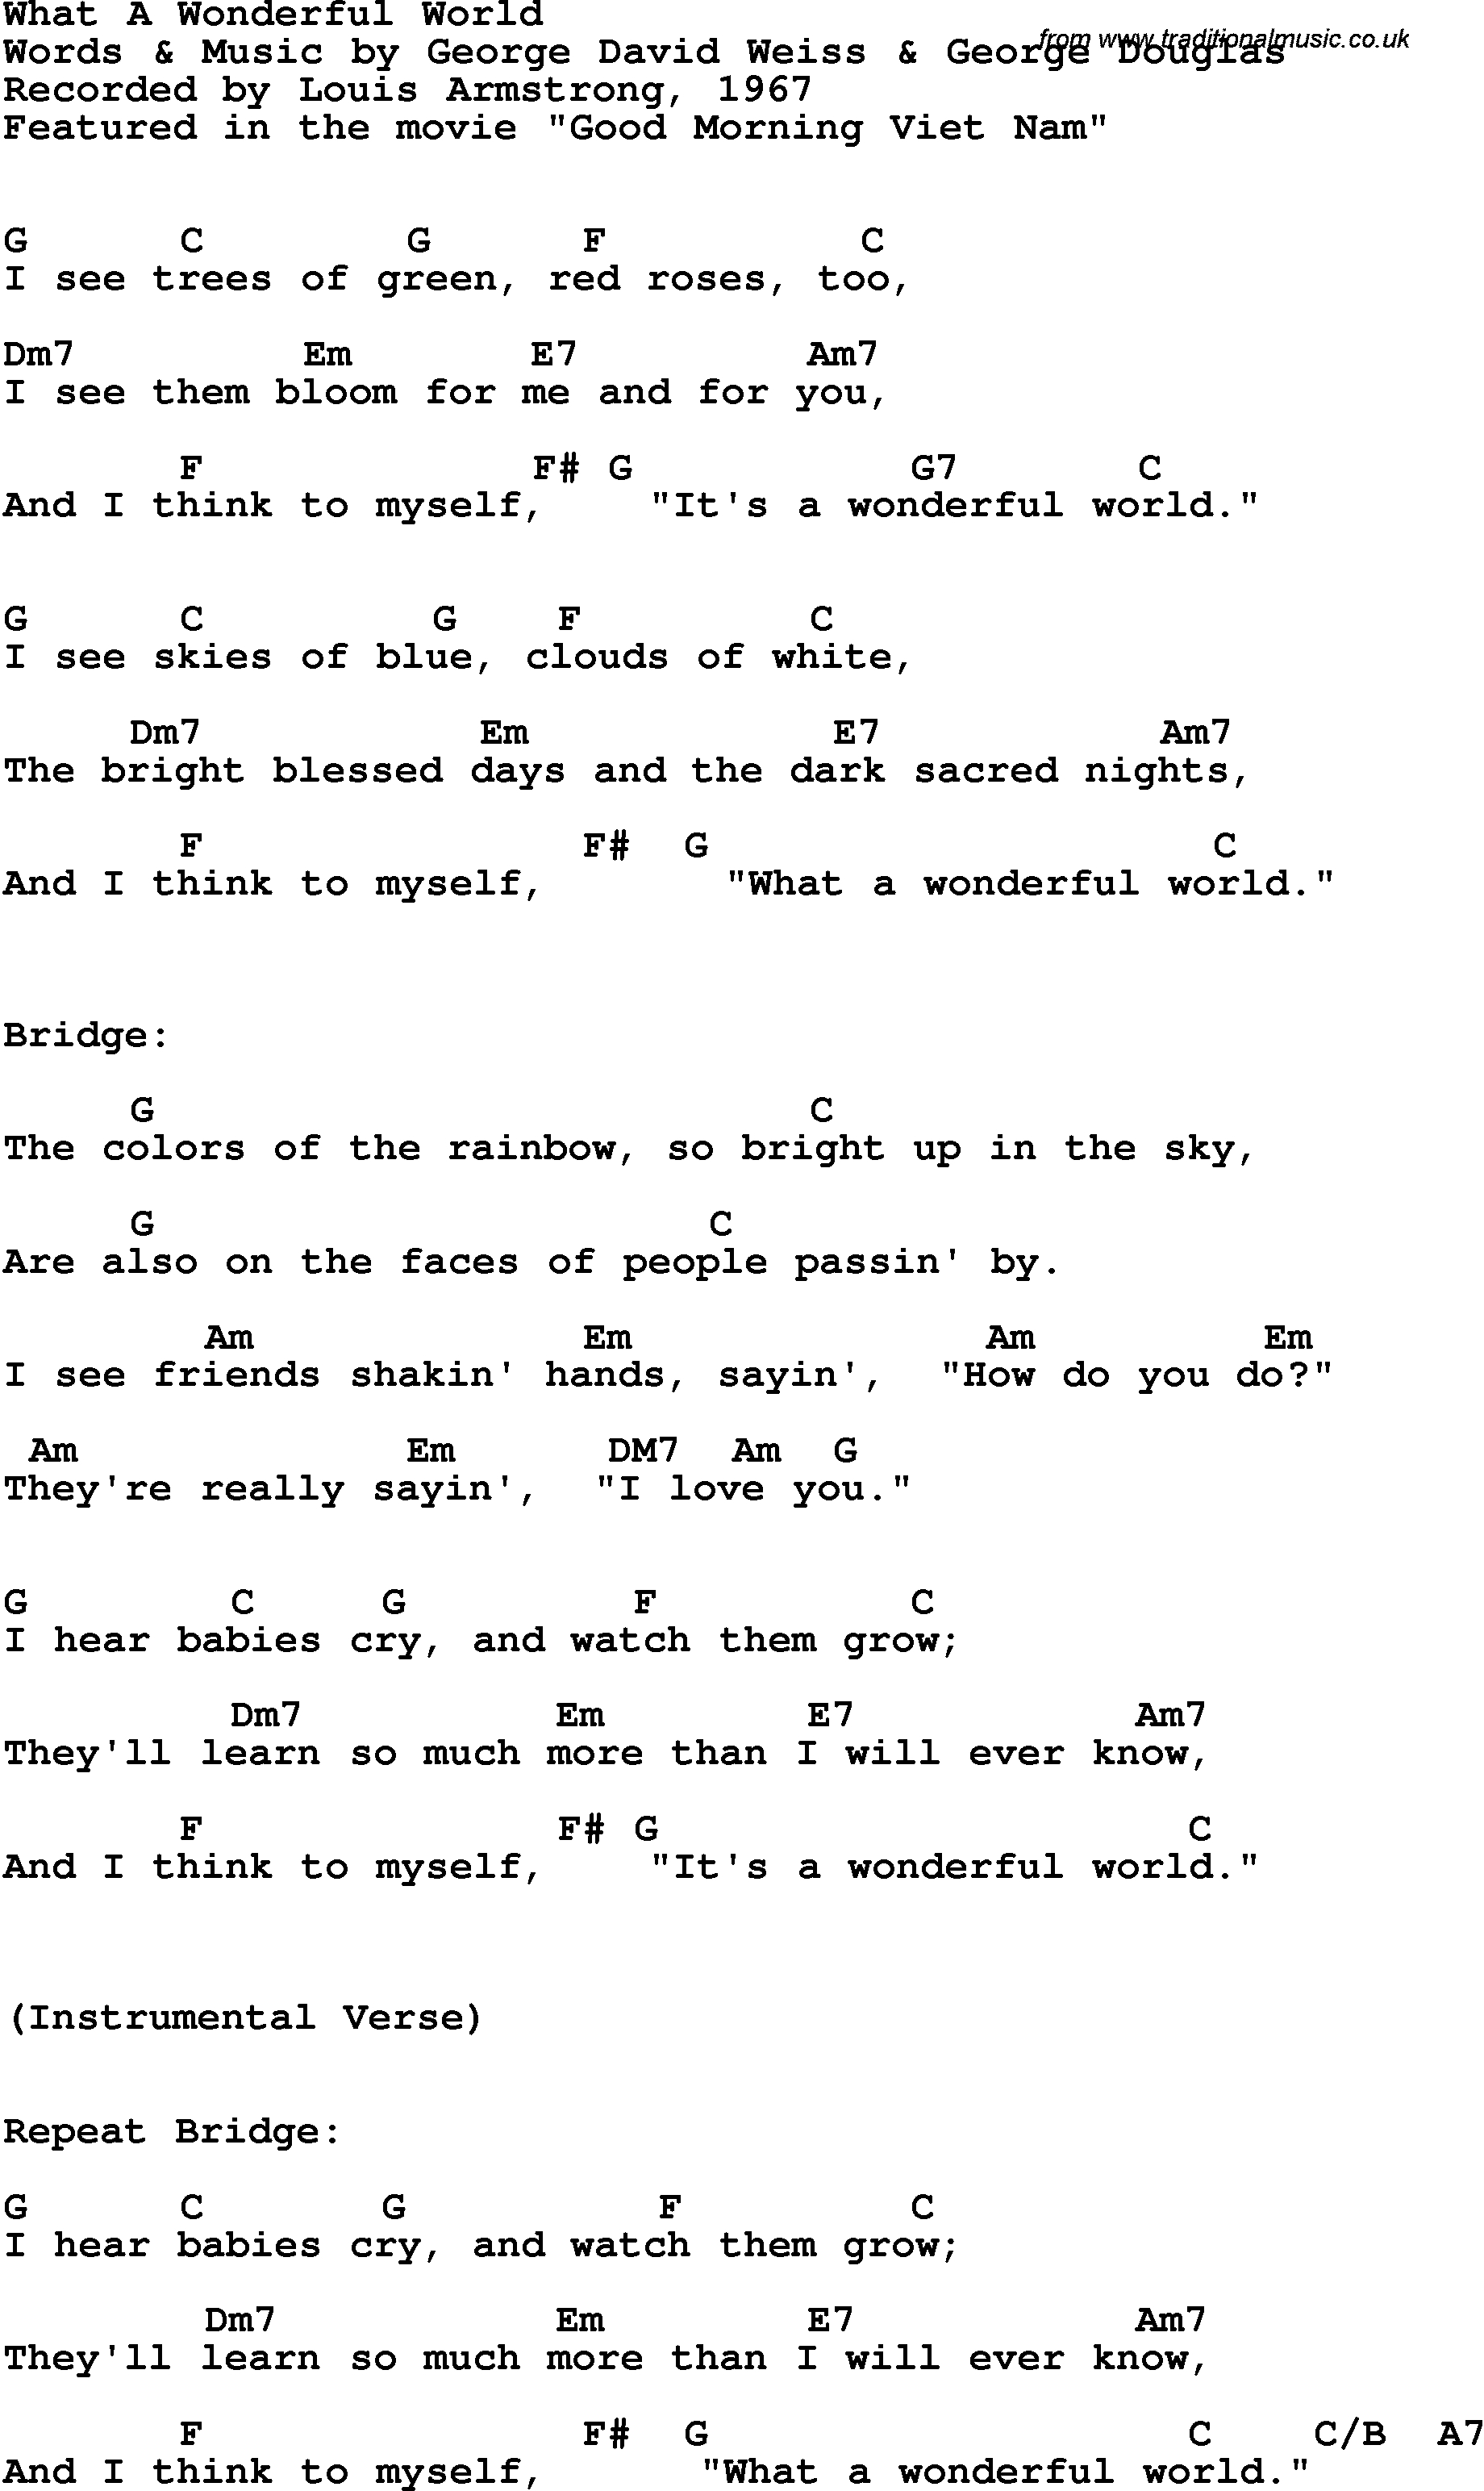 What A Wonderful World Chords Song Lyrics With Guitar Chords For What A Wonderful World Louis